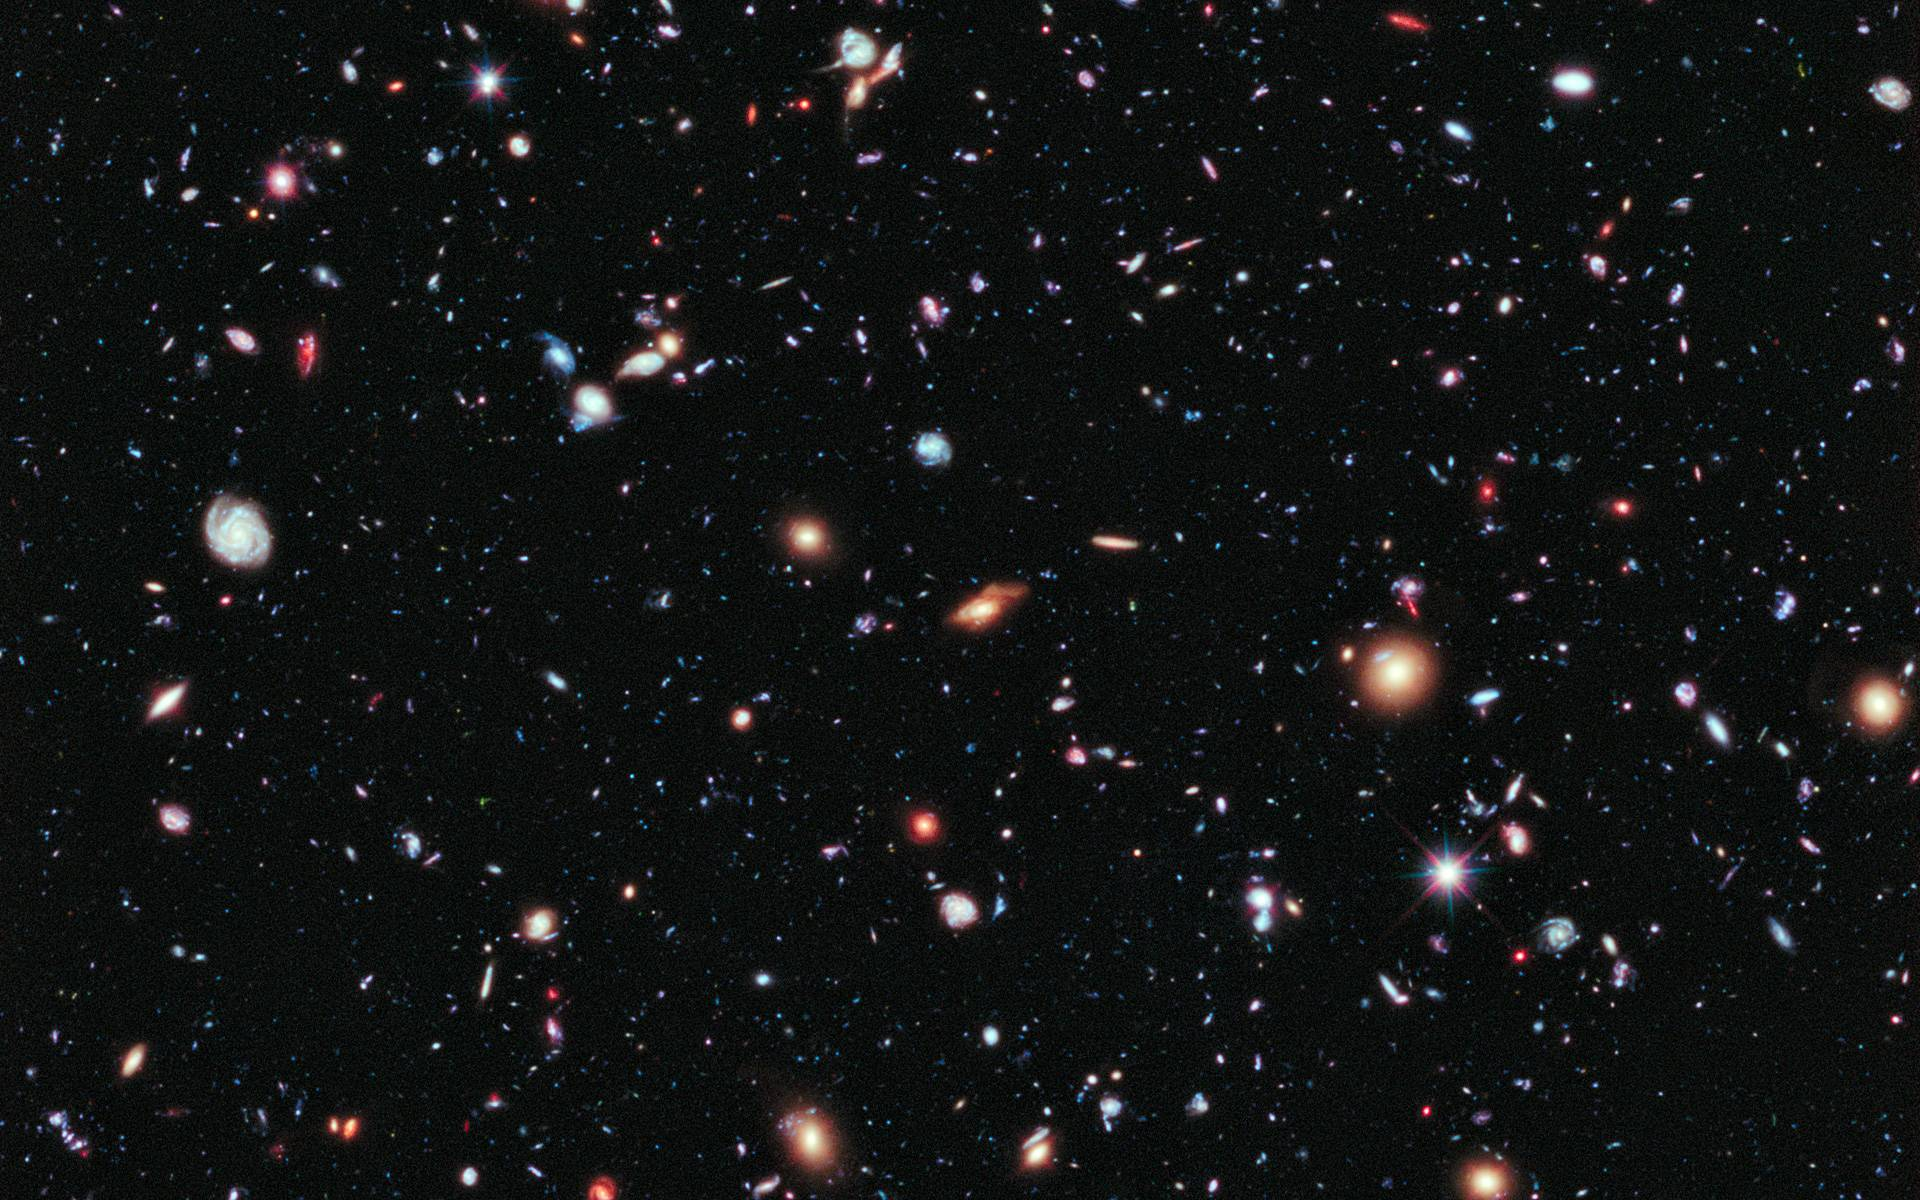 hubble deep field hd wallpaper - photo #14